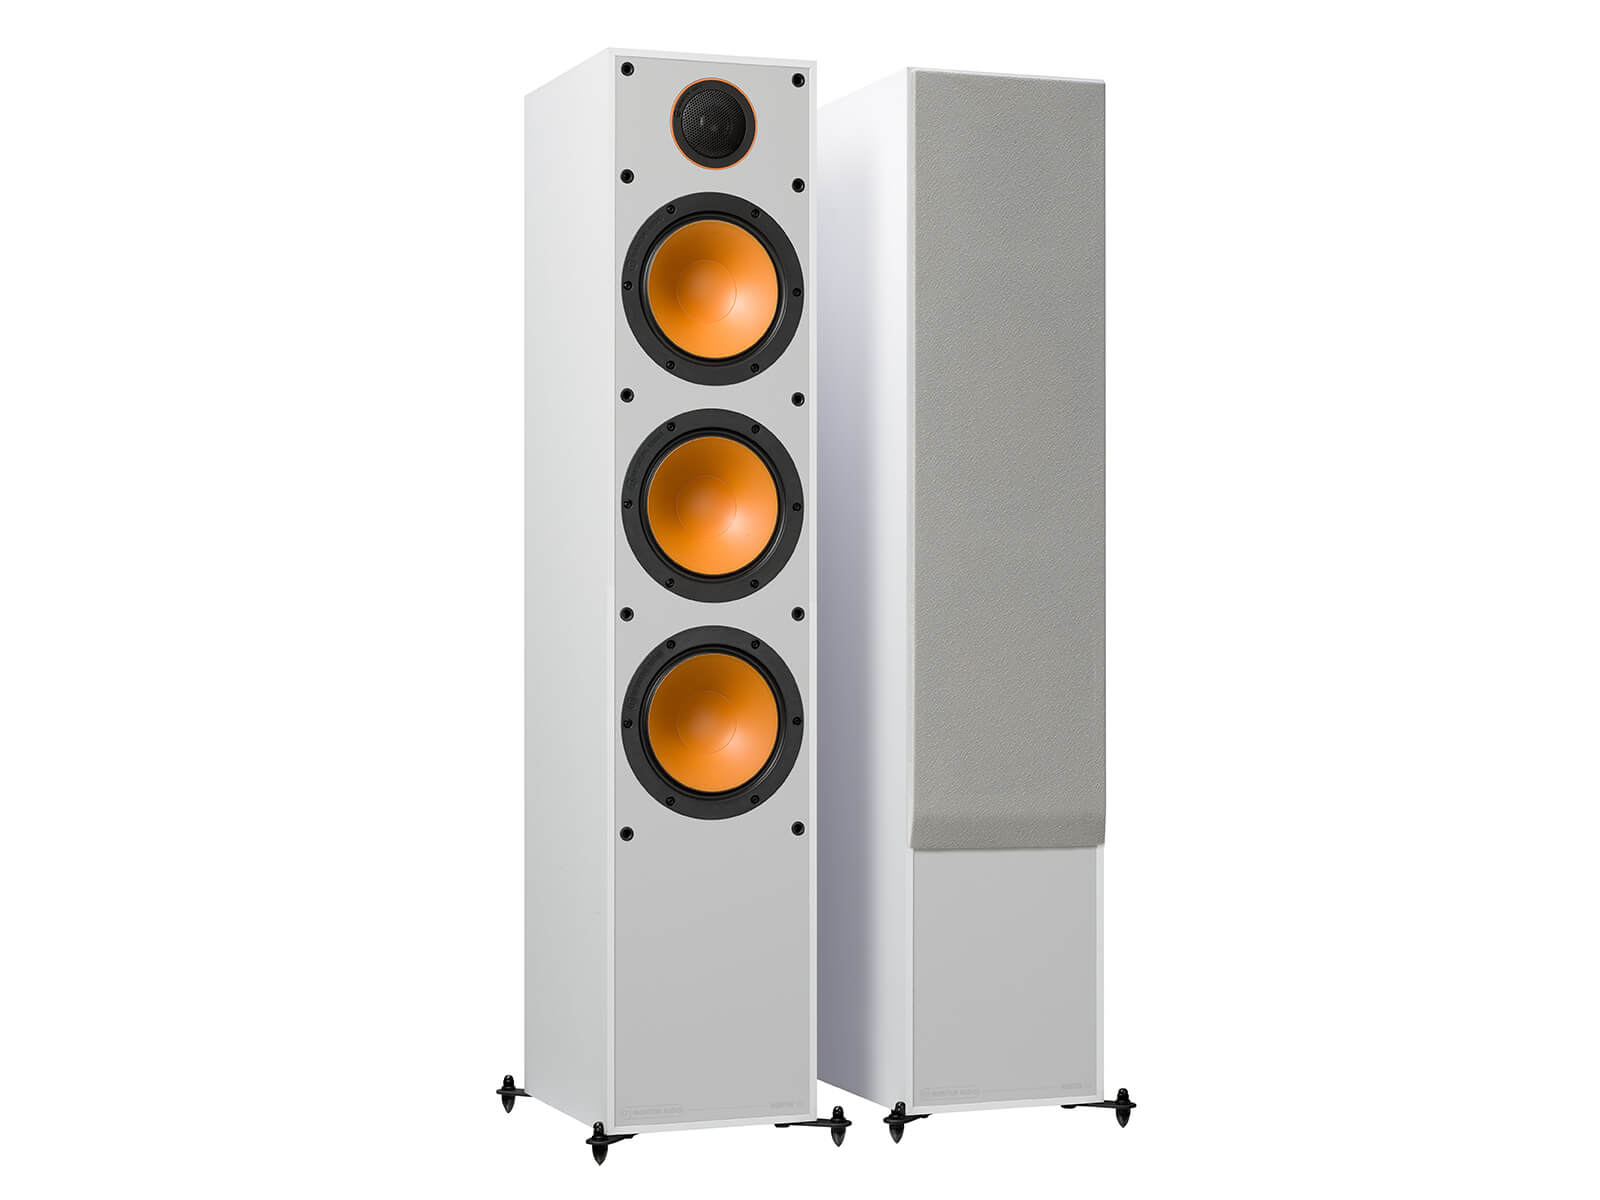 Monitor 300, floorstanding speakers, with and without grille in a white finish.